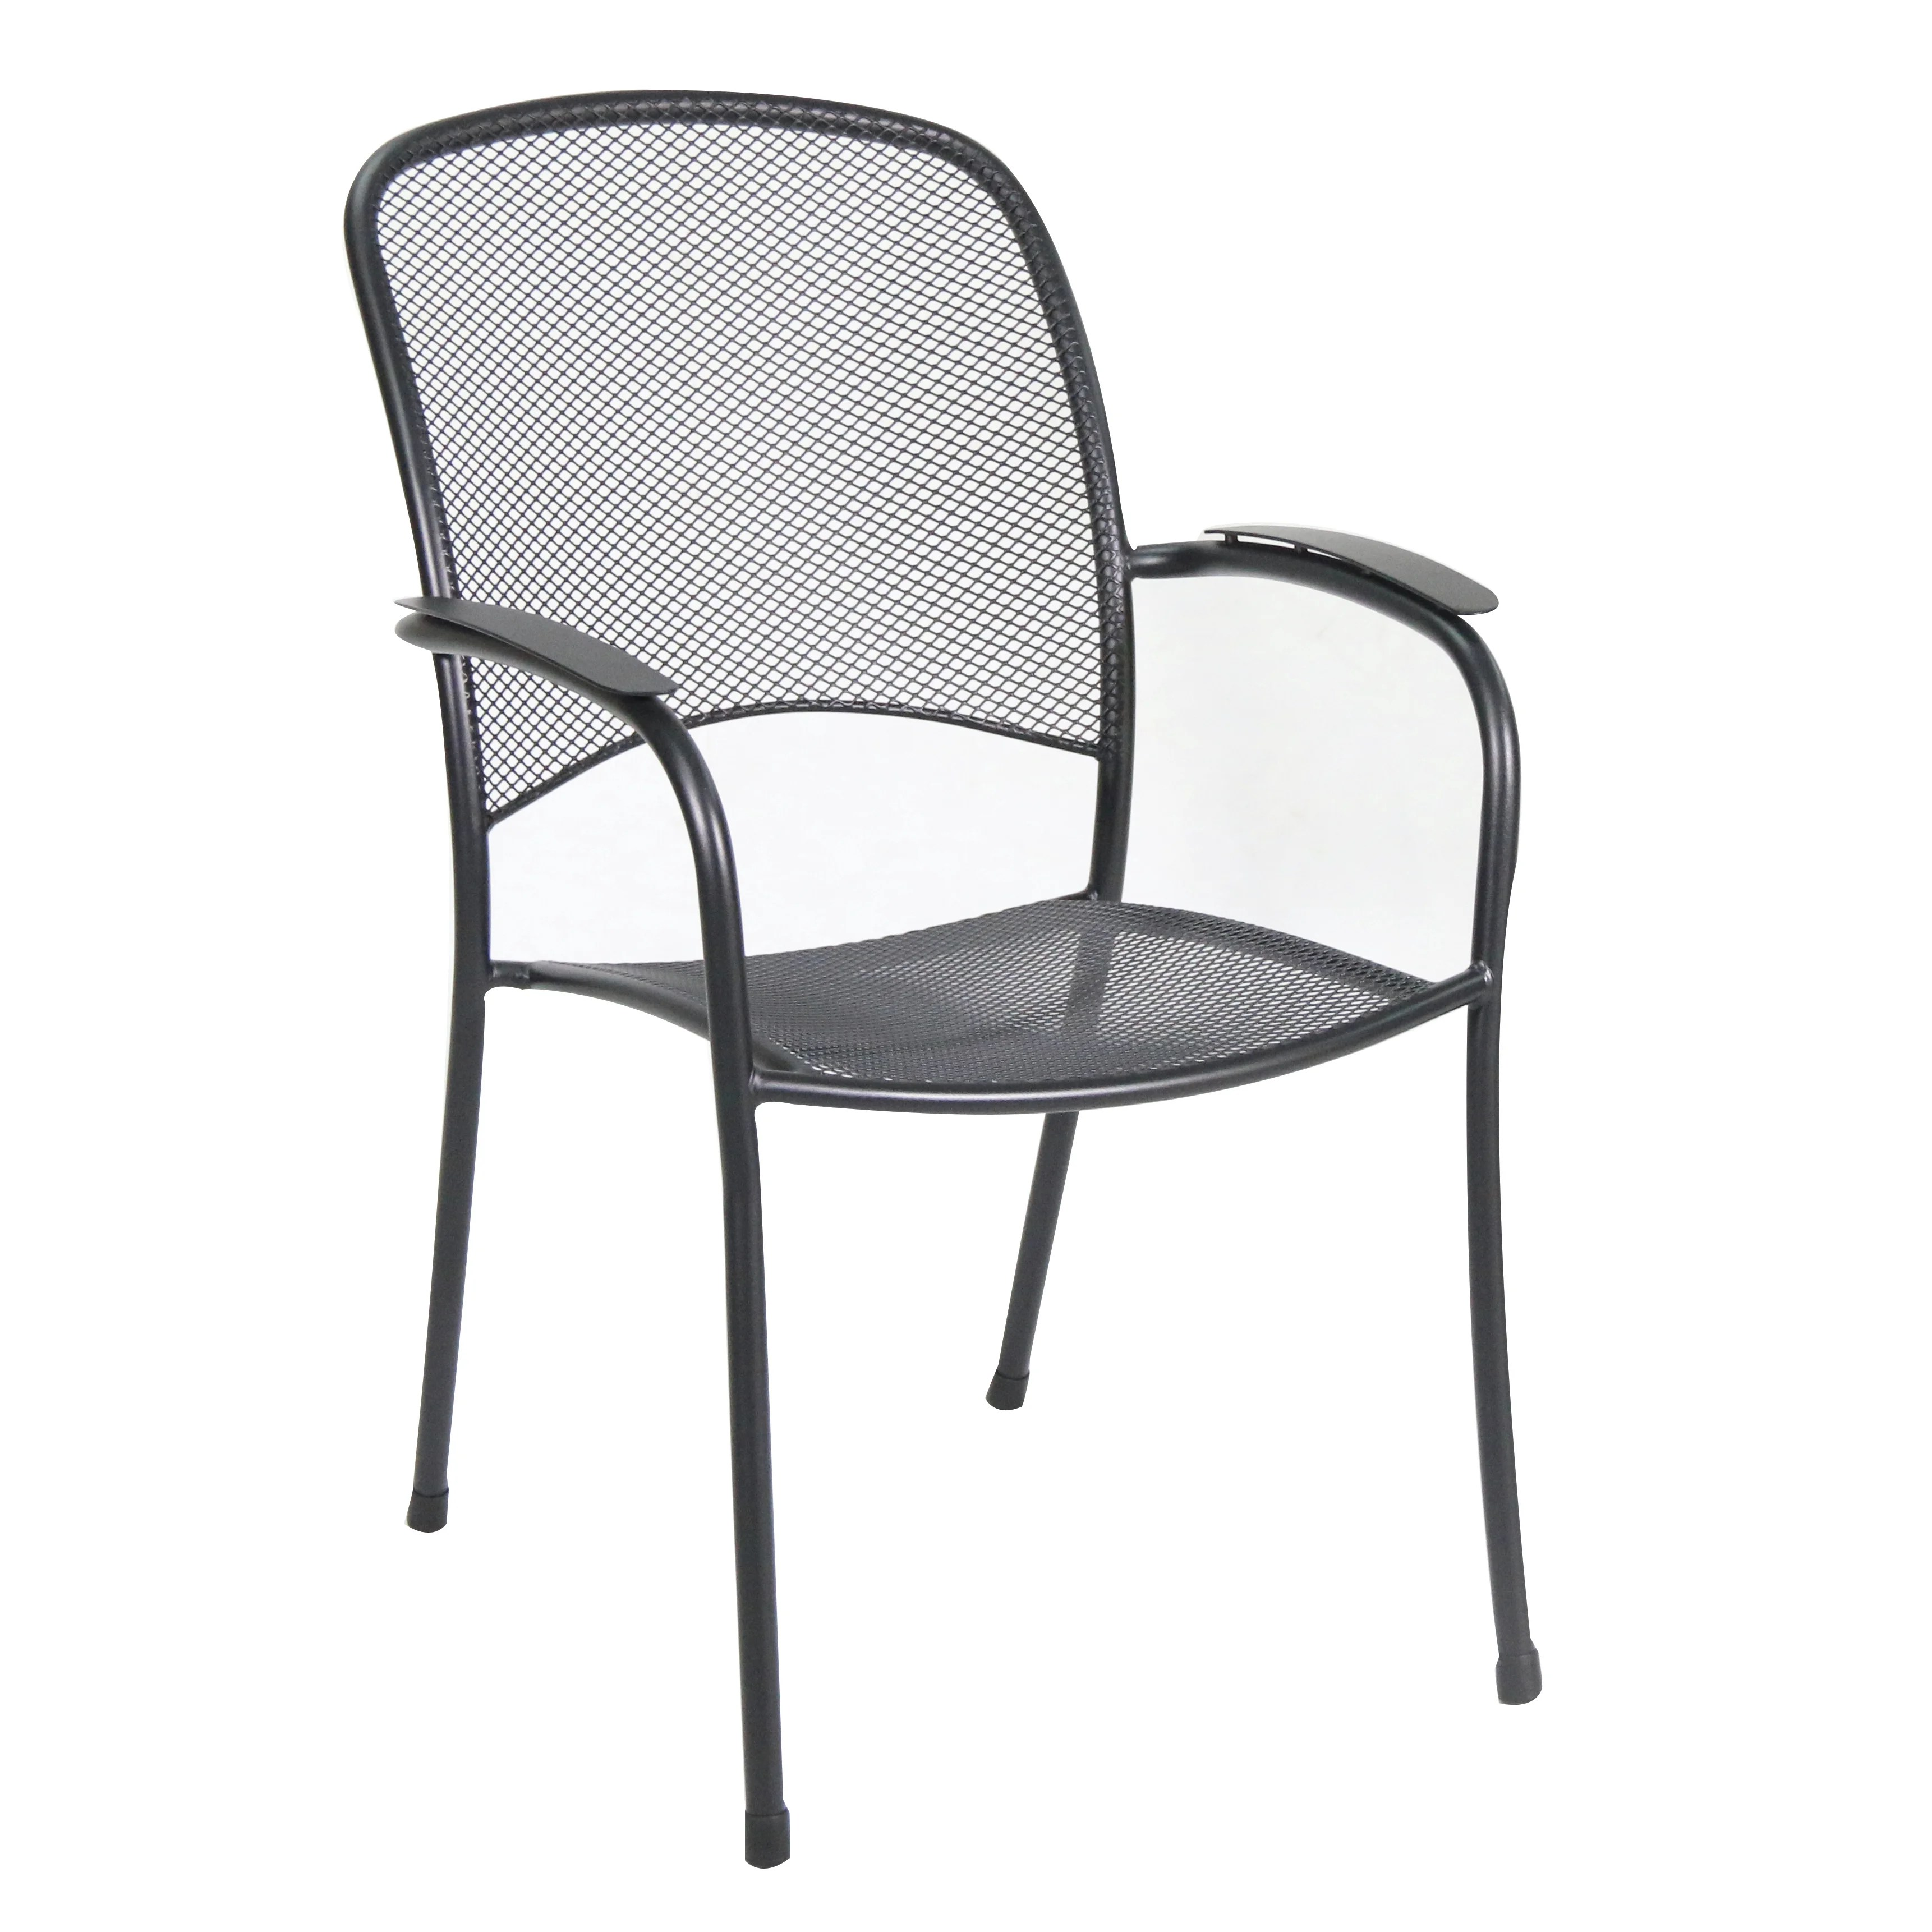 Stacking Dining Chairs Royal Garden Monaco Stacking Mesh Dining Arm Chair